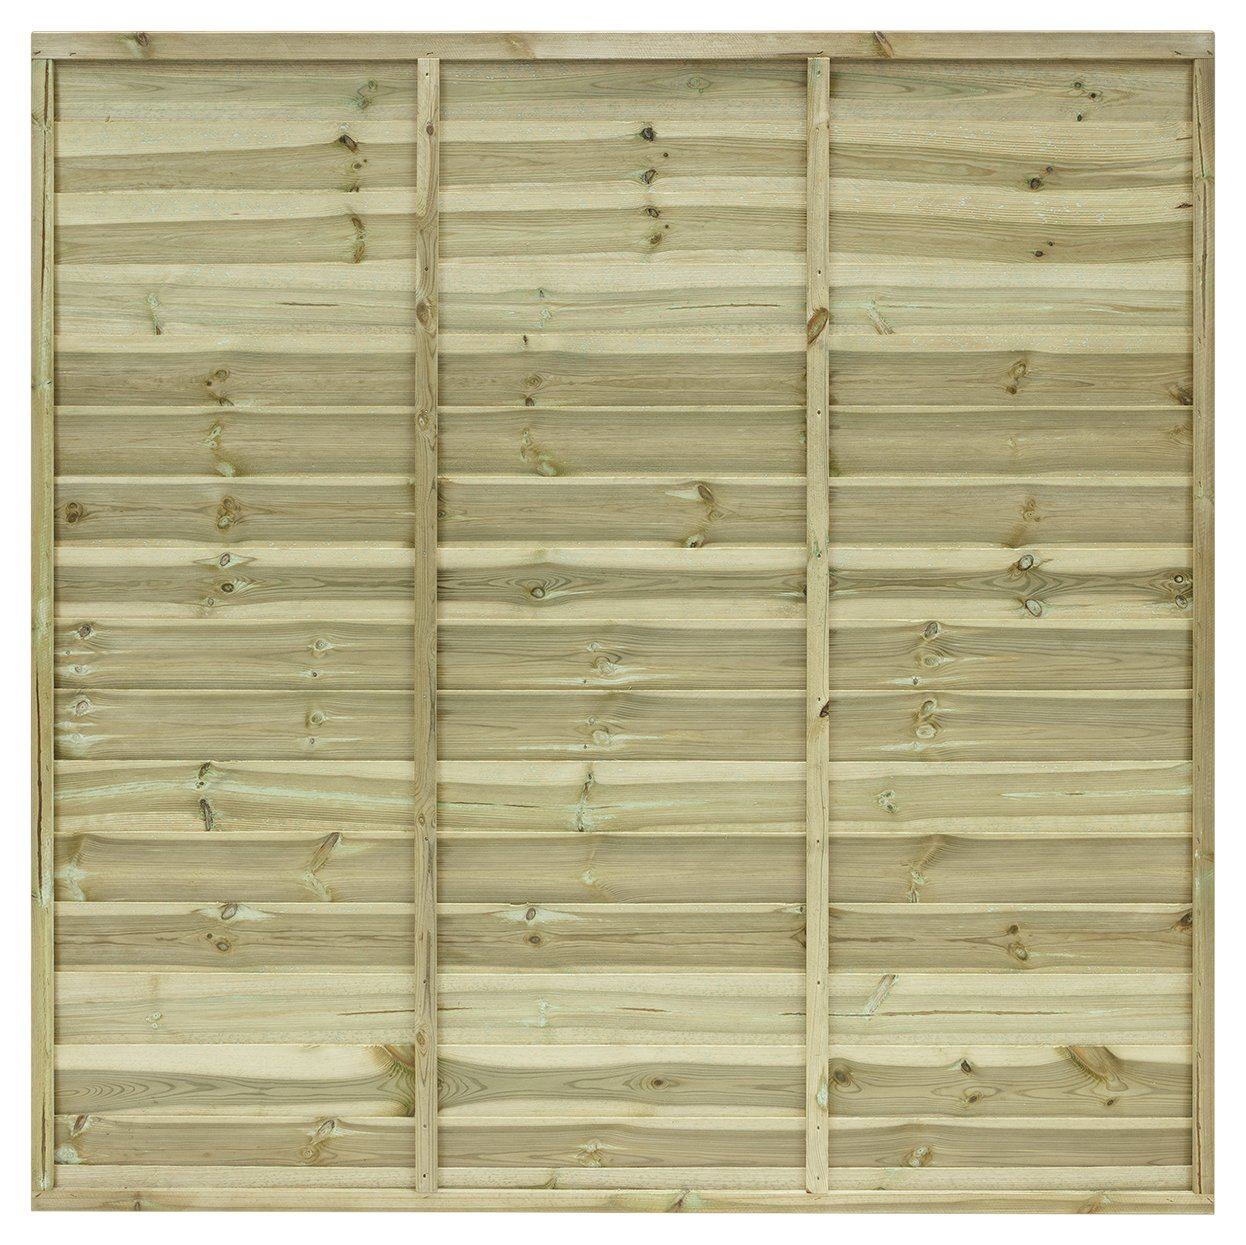 Grange Fencing 1.8m Ultimate Fence Panel - Pack of 3. lowest price